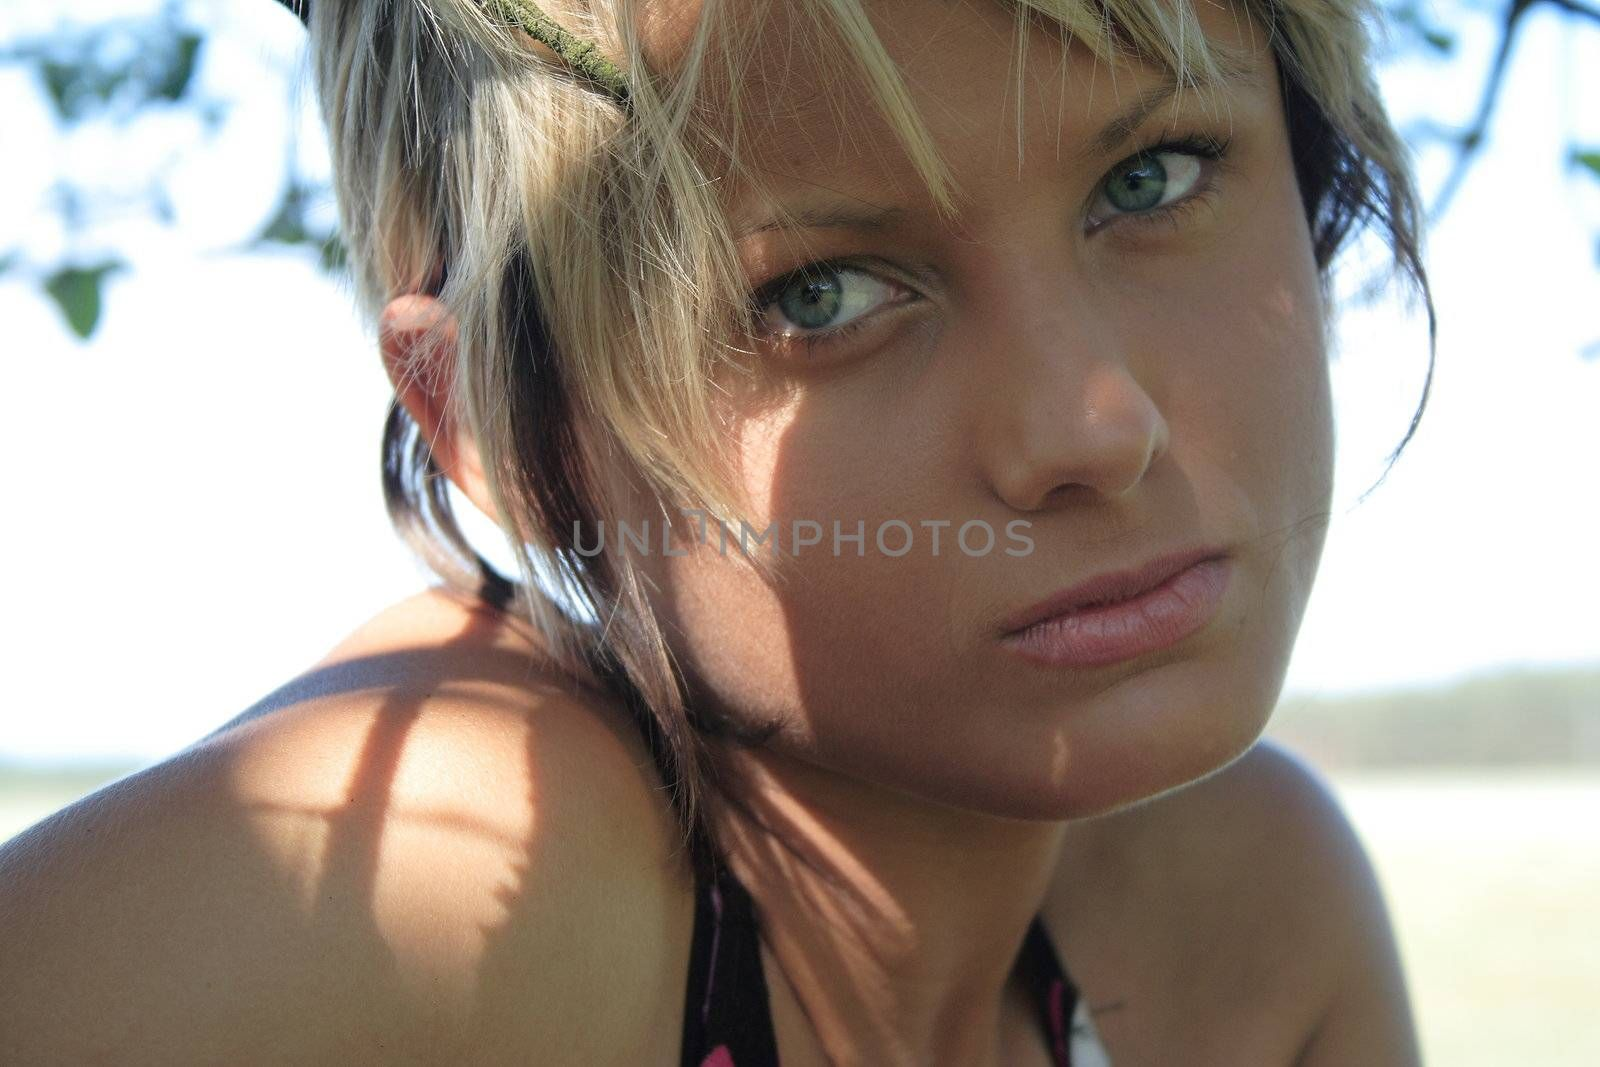 Young and beauty girl on grass